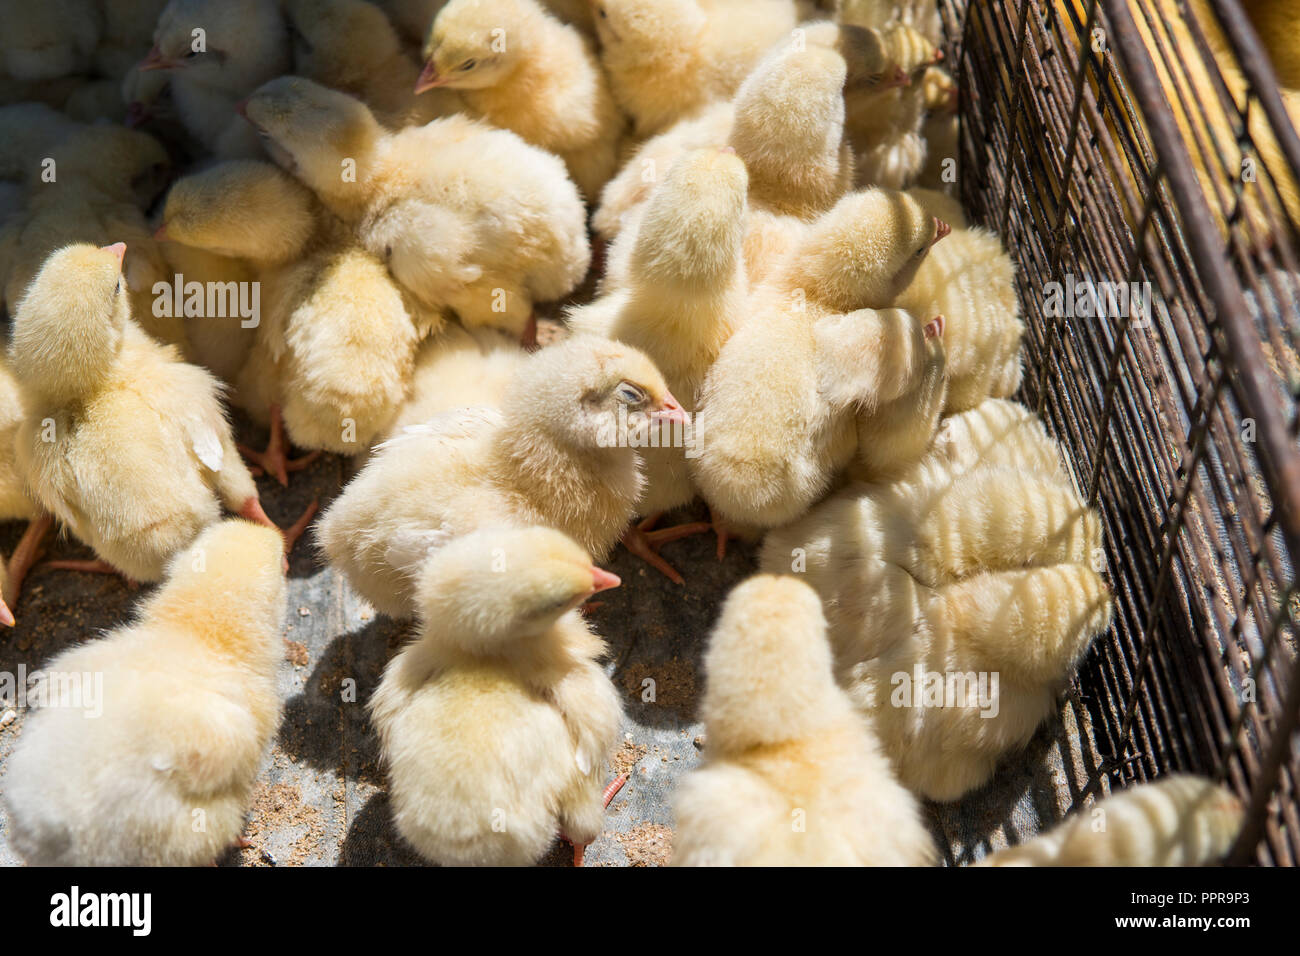 Baby chicken, small and very beautiful yellow chicks are placed in metal net cage box for sale on a fair. Incubator chickens for sale. Agriculture. Farming. - Stock Image